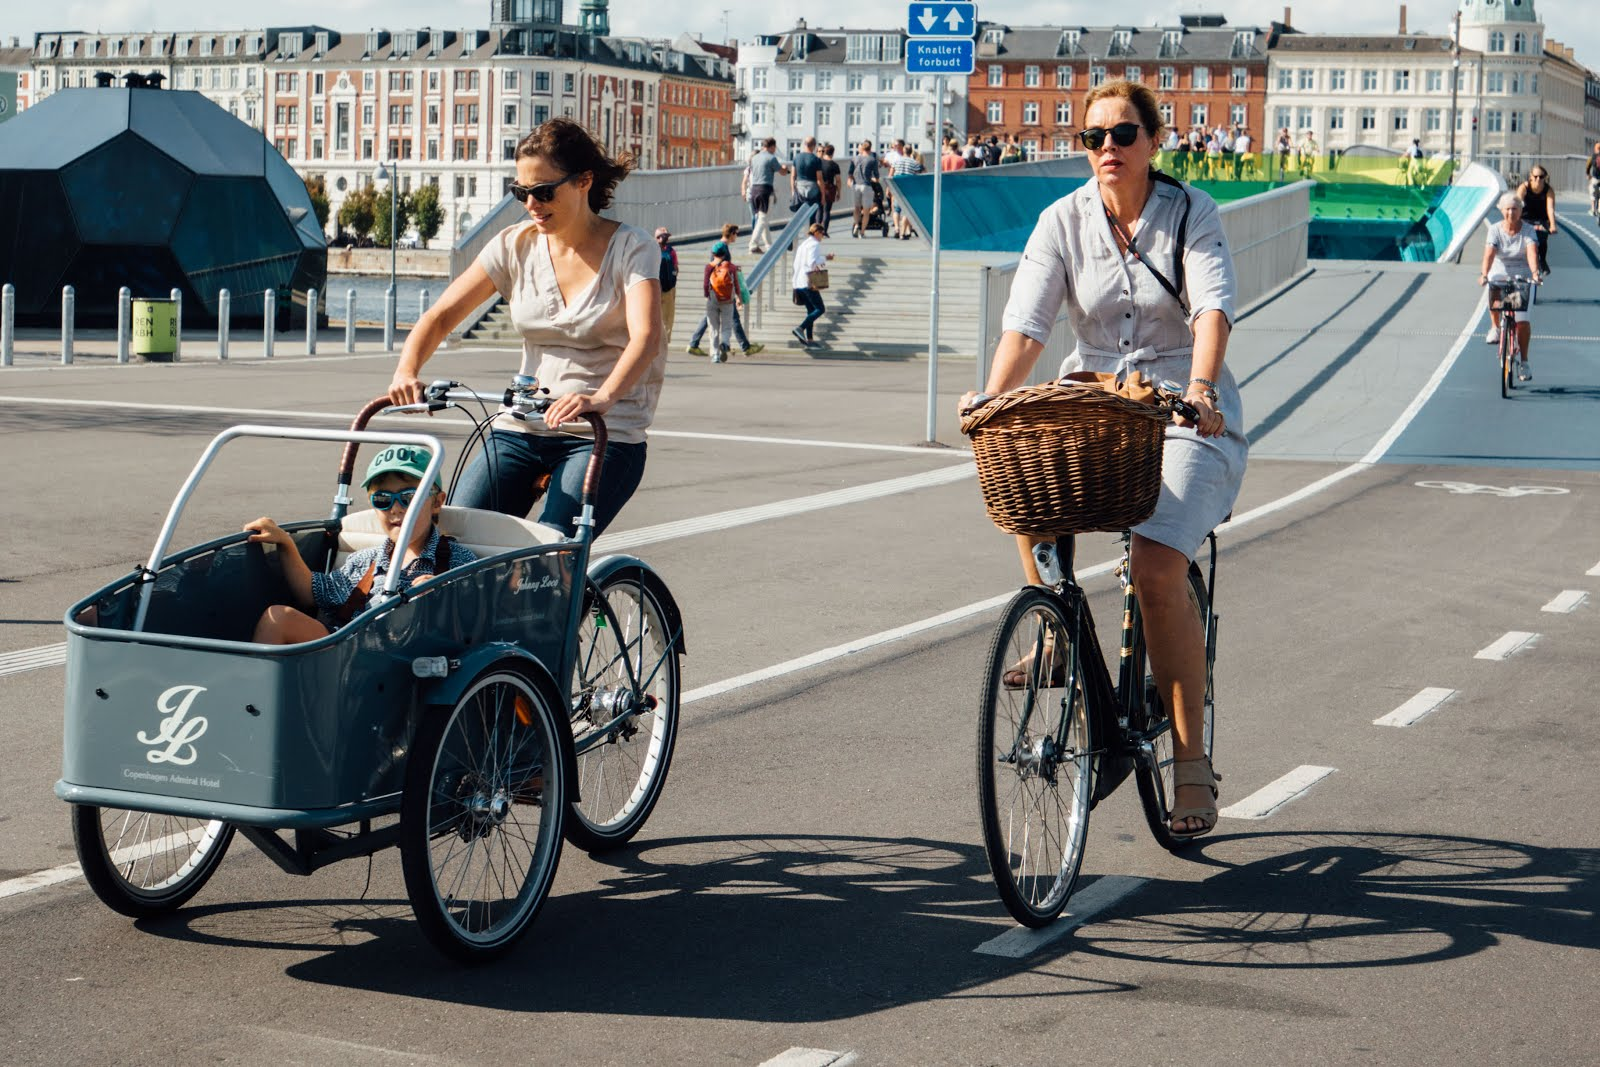 And one from early october in copenhagen the sun was shining and this beautifully colored cargo bike amazed us with the truly happy kido inside